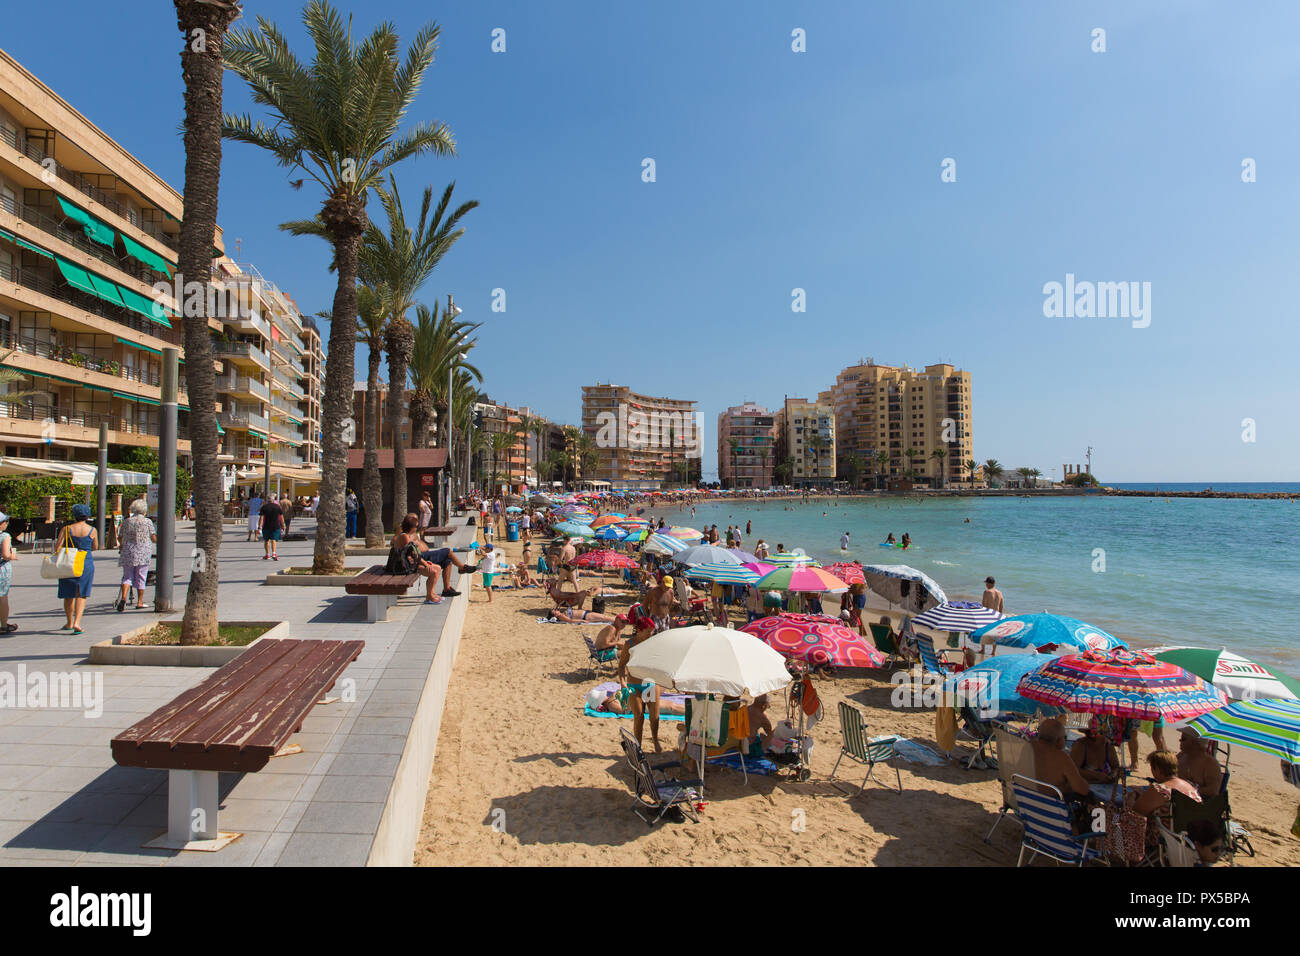 Torrevieja Spain beautiful October sunshine and hot weather made tourists and visitors put up parasols and umbrellas - Stock Image